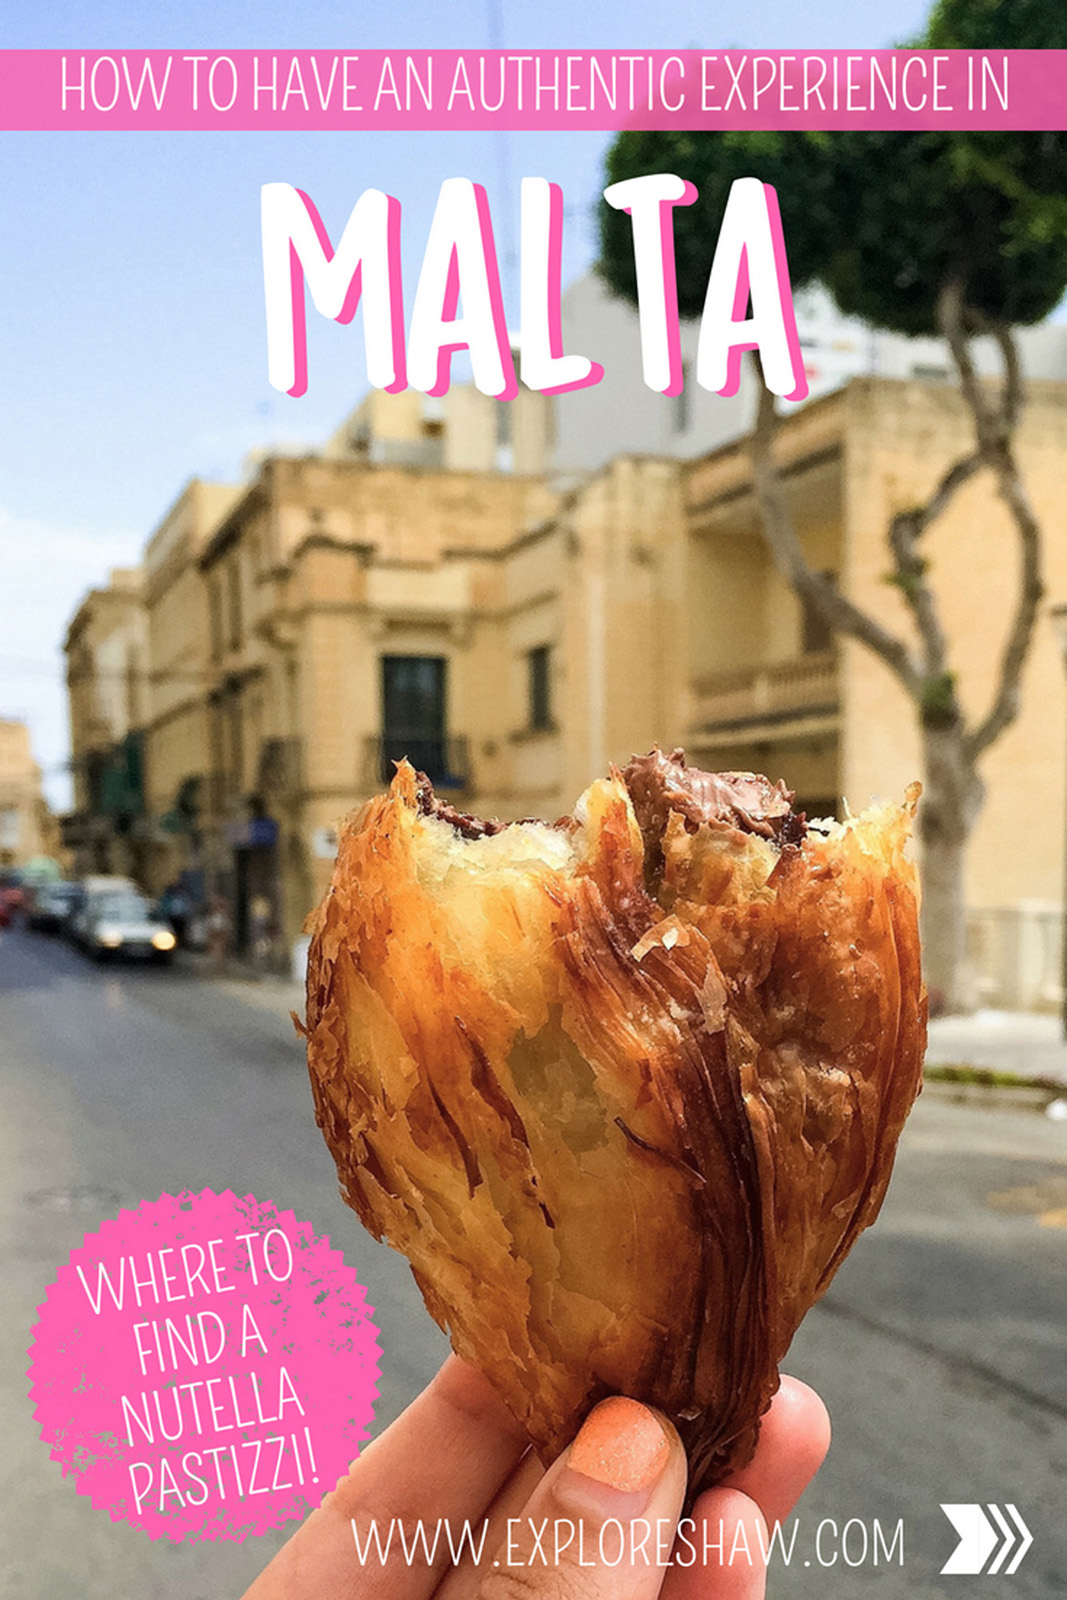 HOW TO HAVE AN AUTHENTIC MALTESE EXPERIENCE